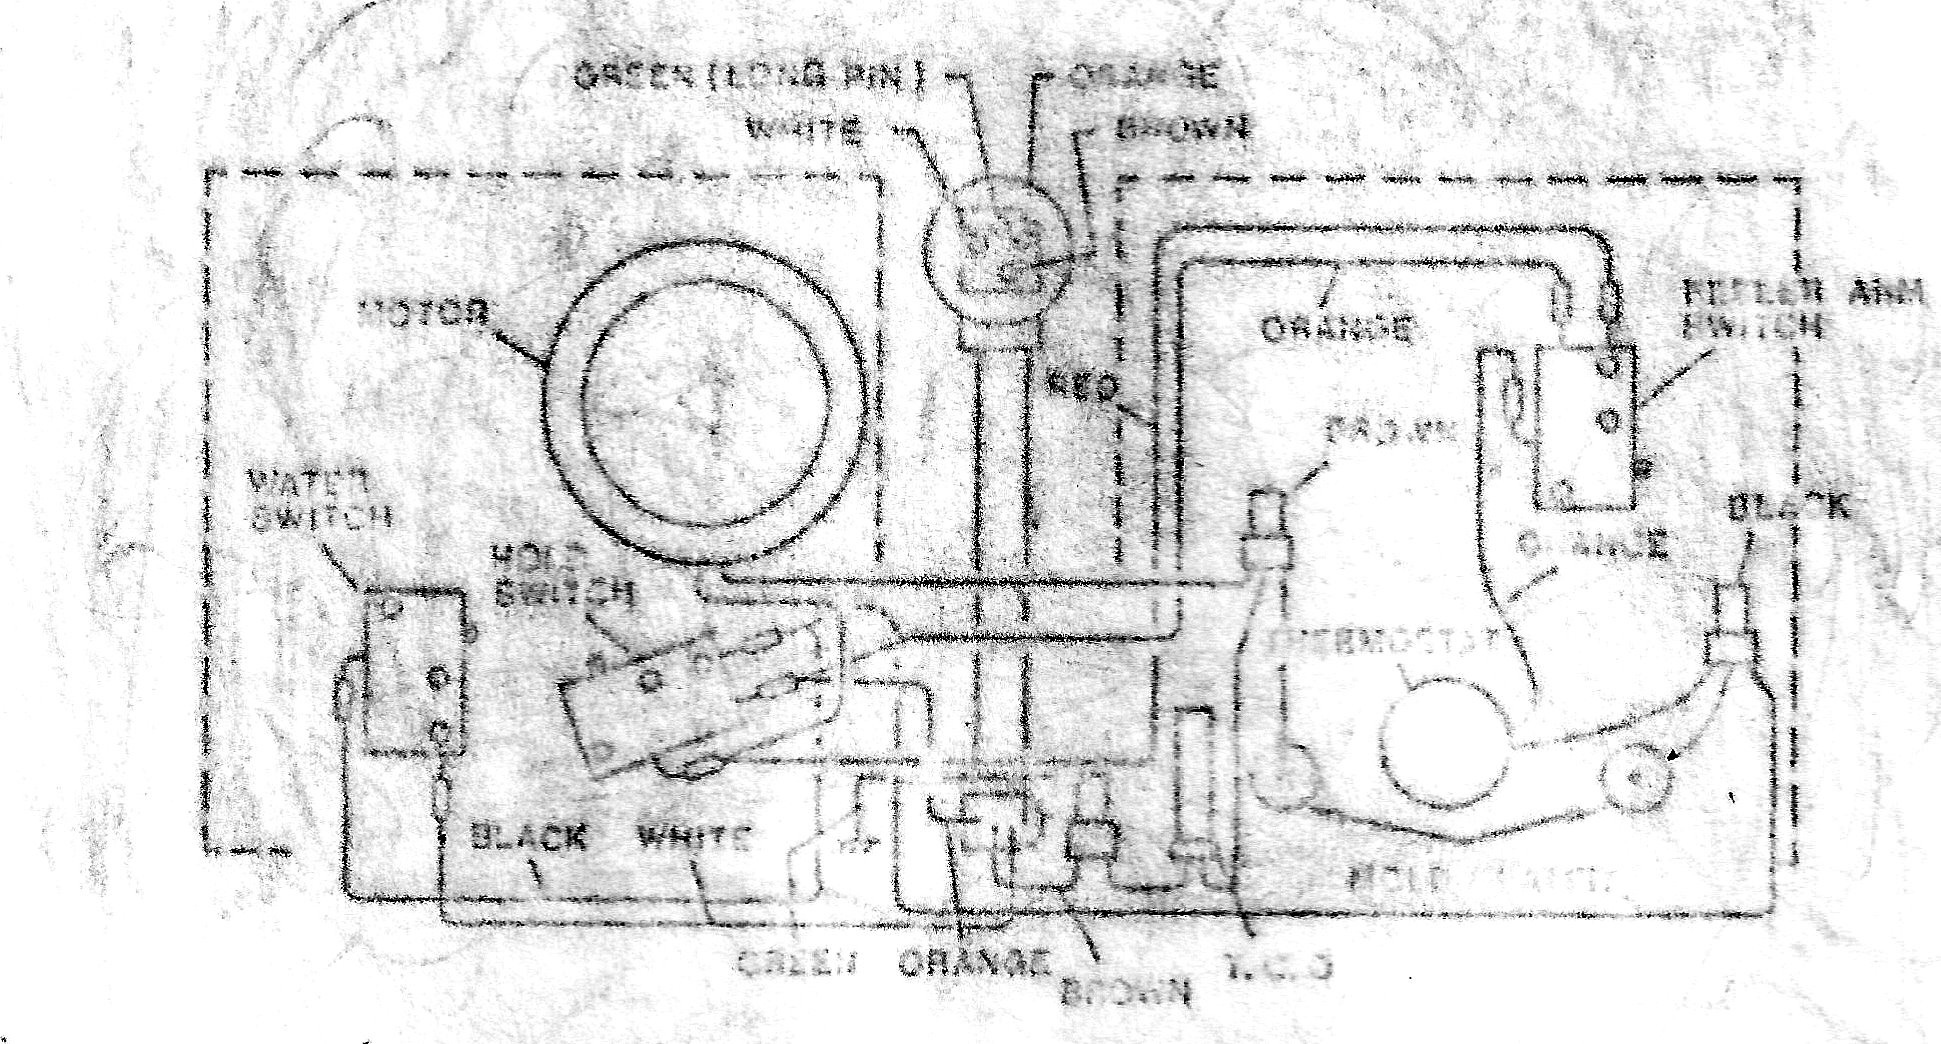 Schematic Diagram of Ice Maker.